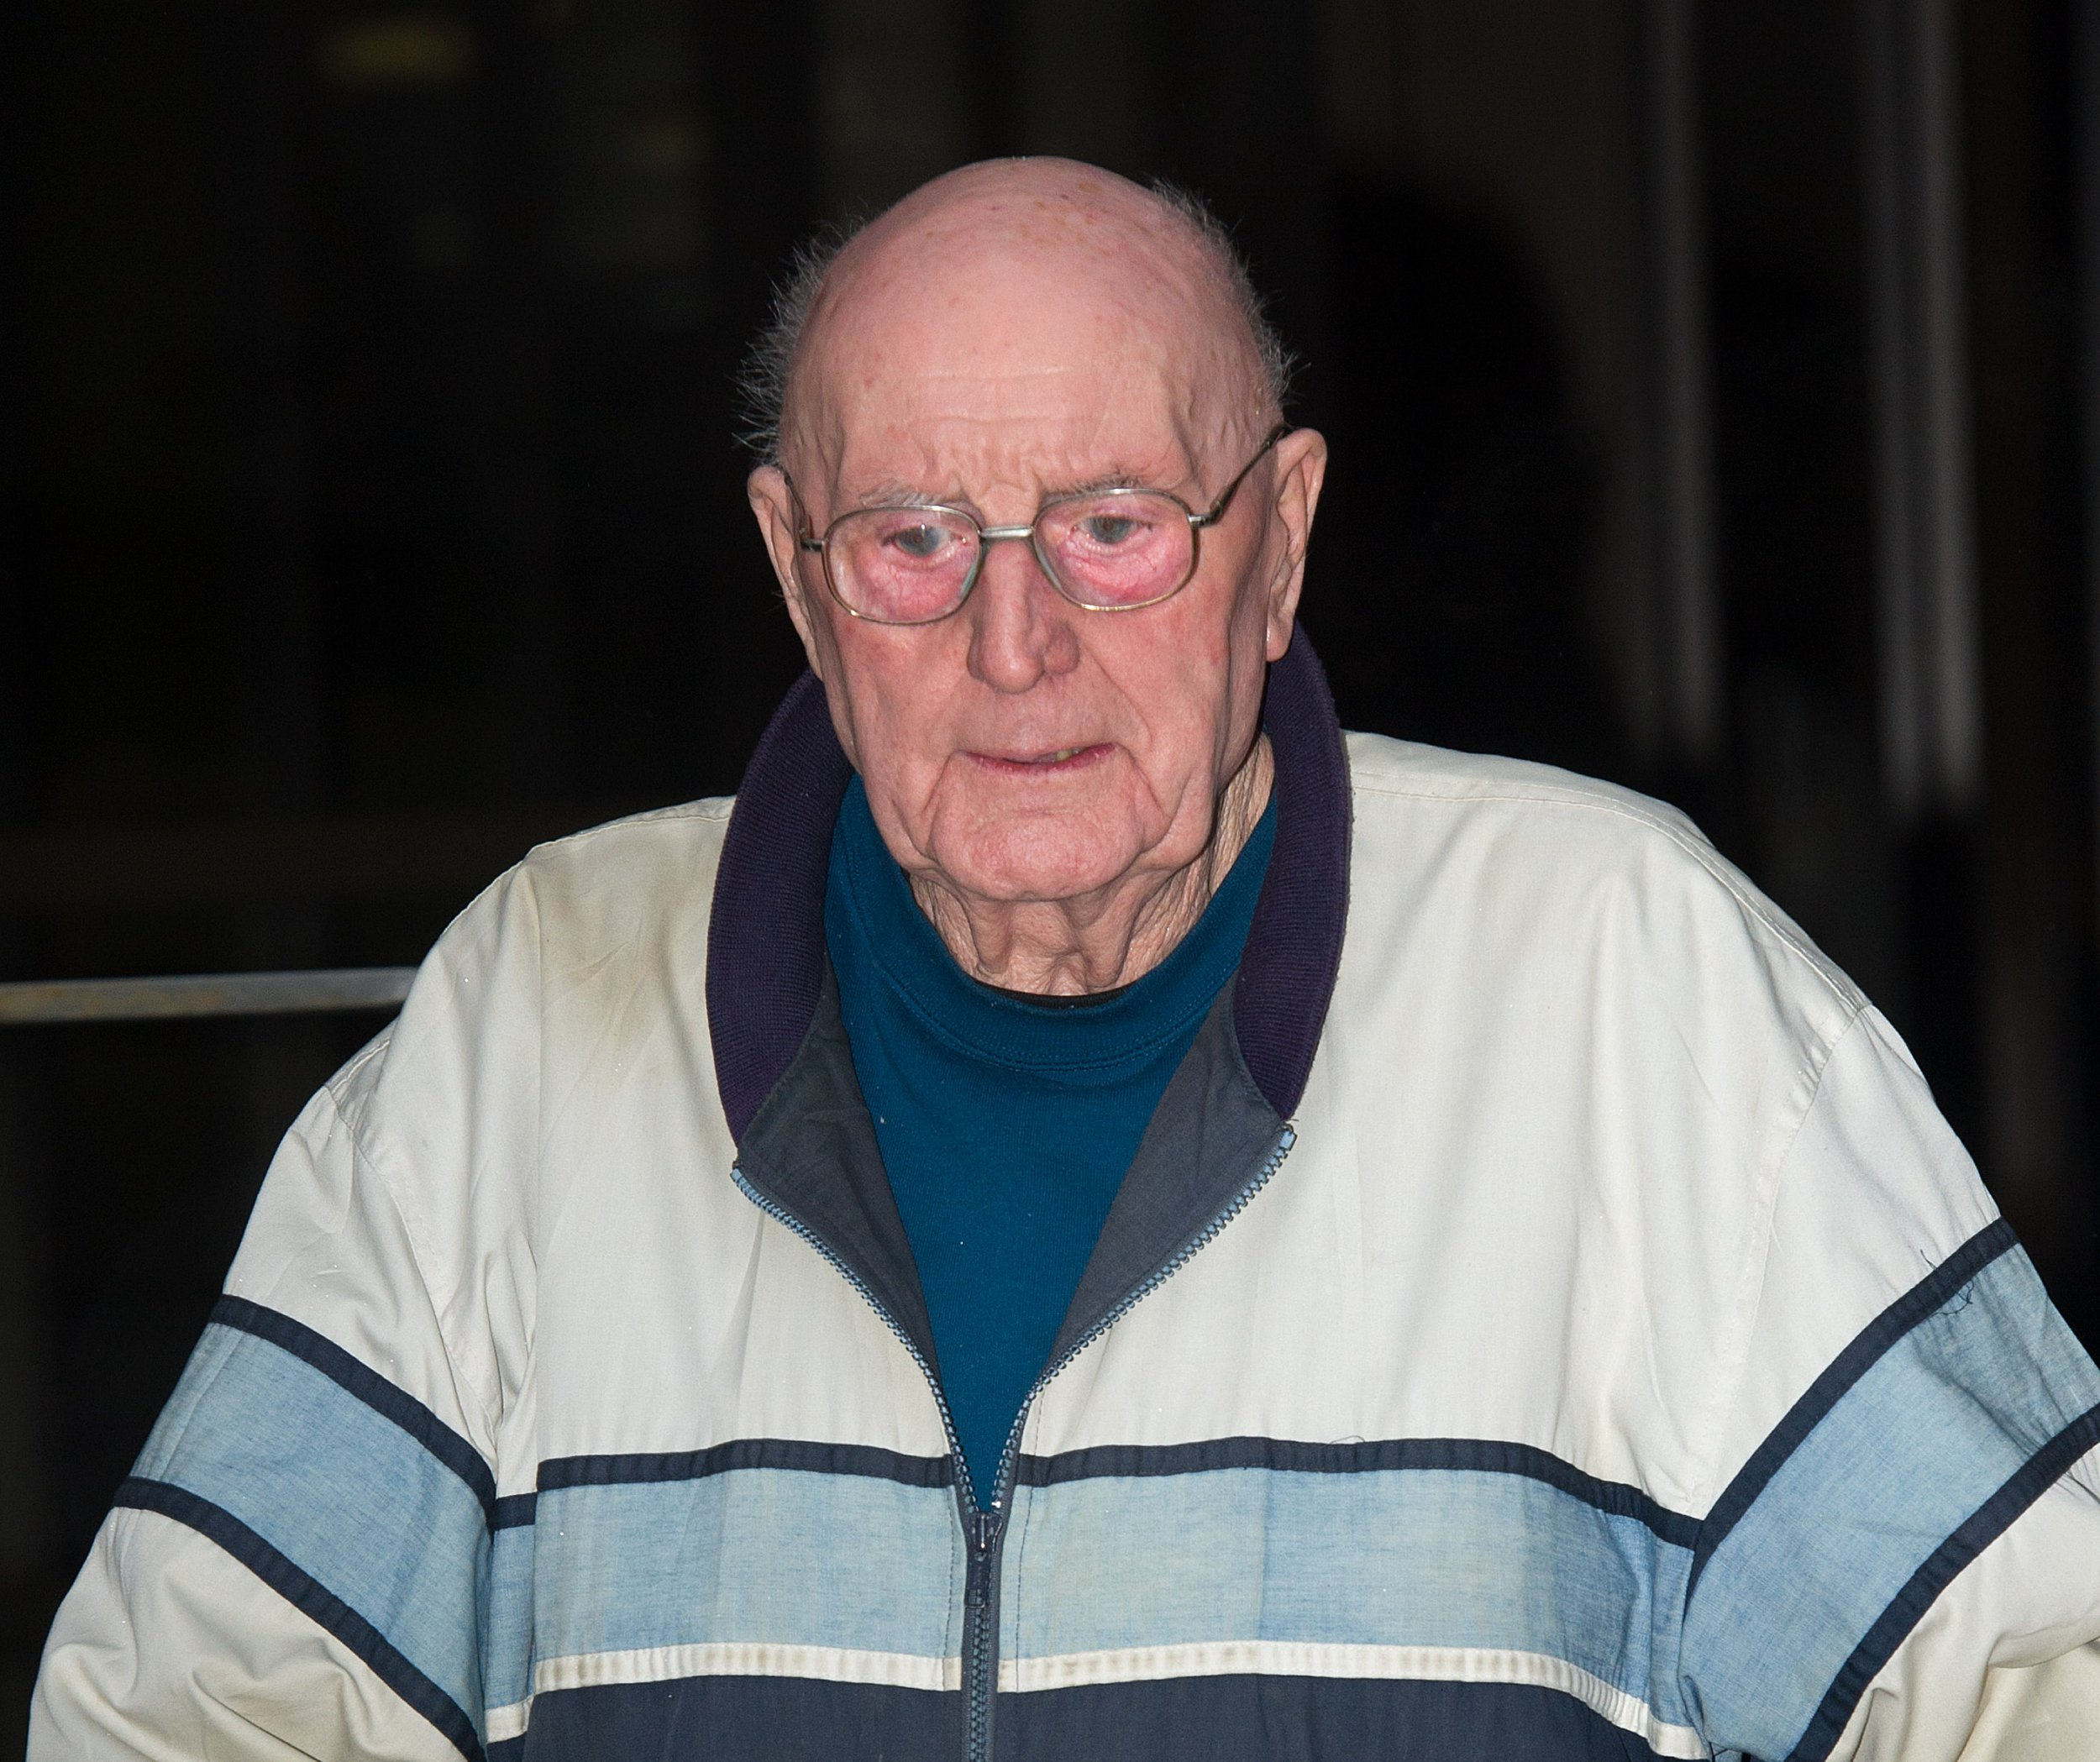 Lawrence Franks, 84, killed his wife